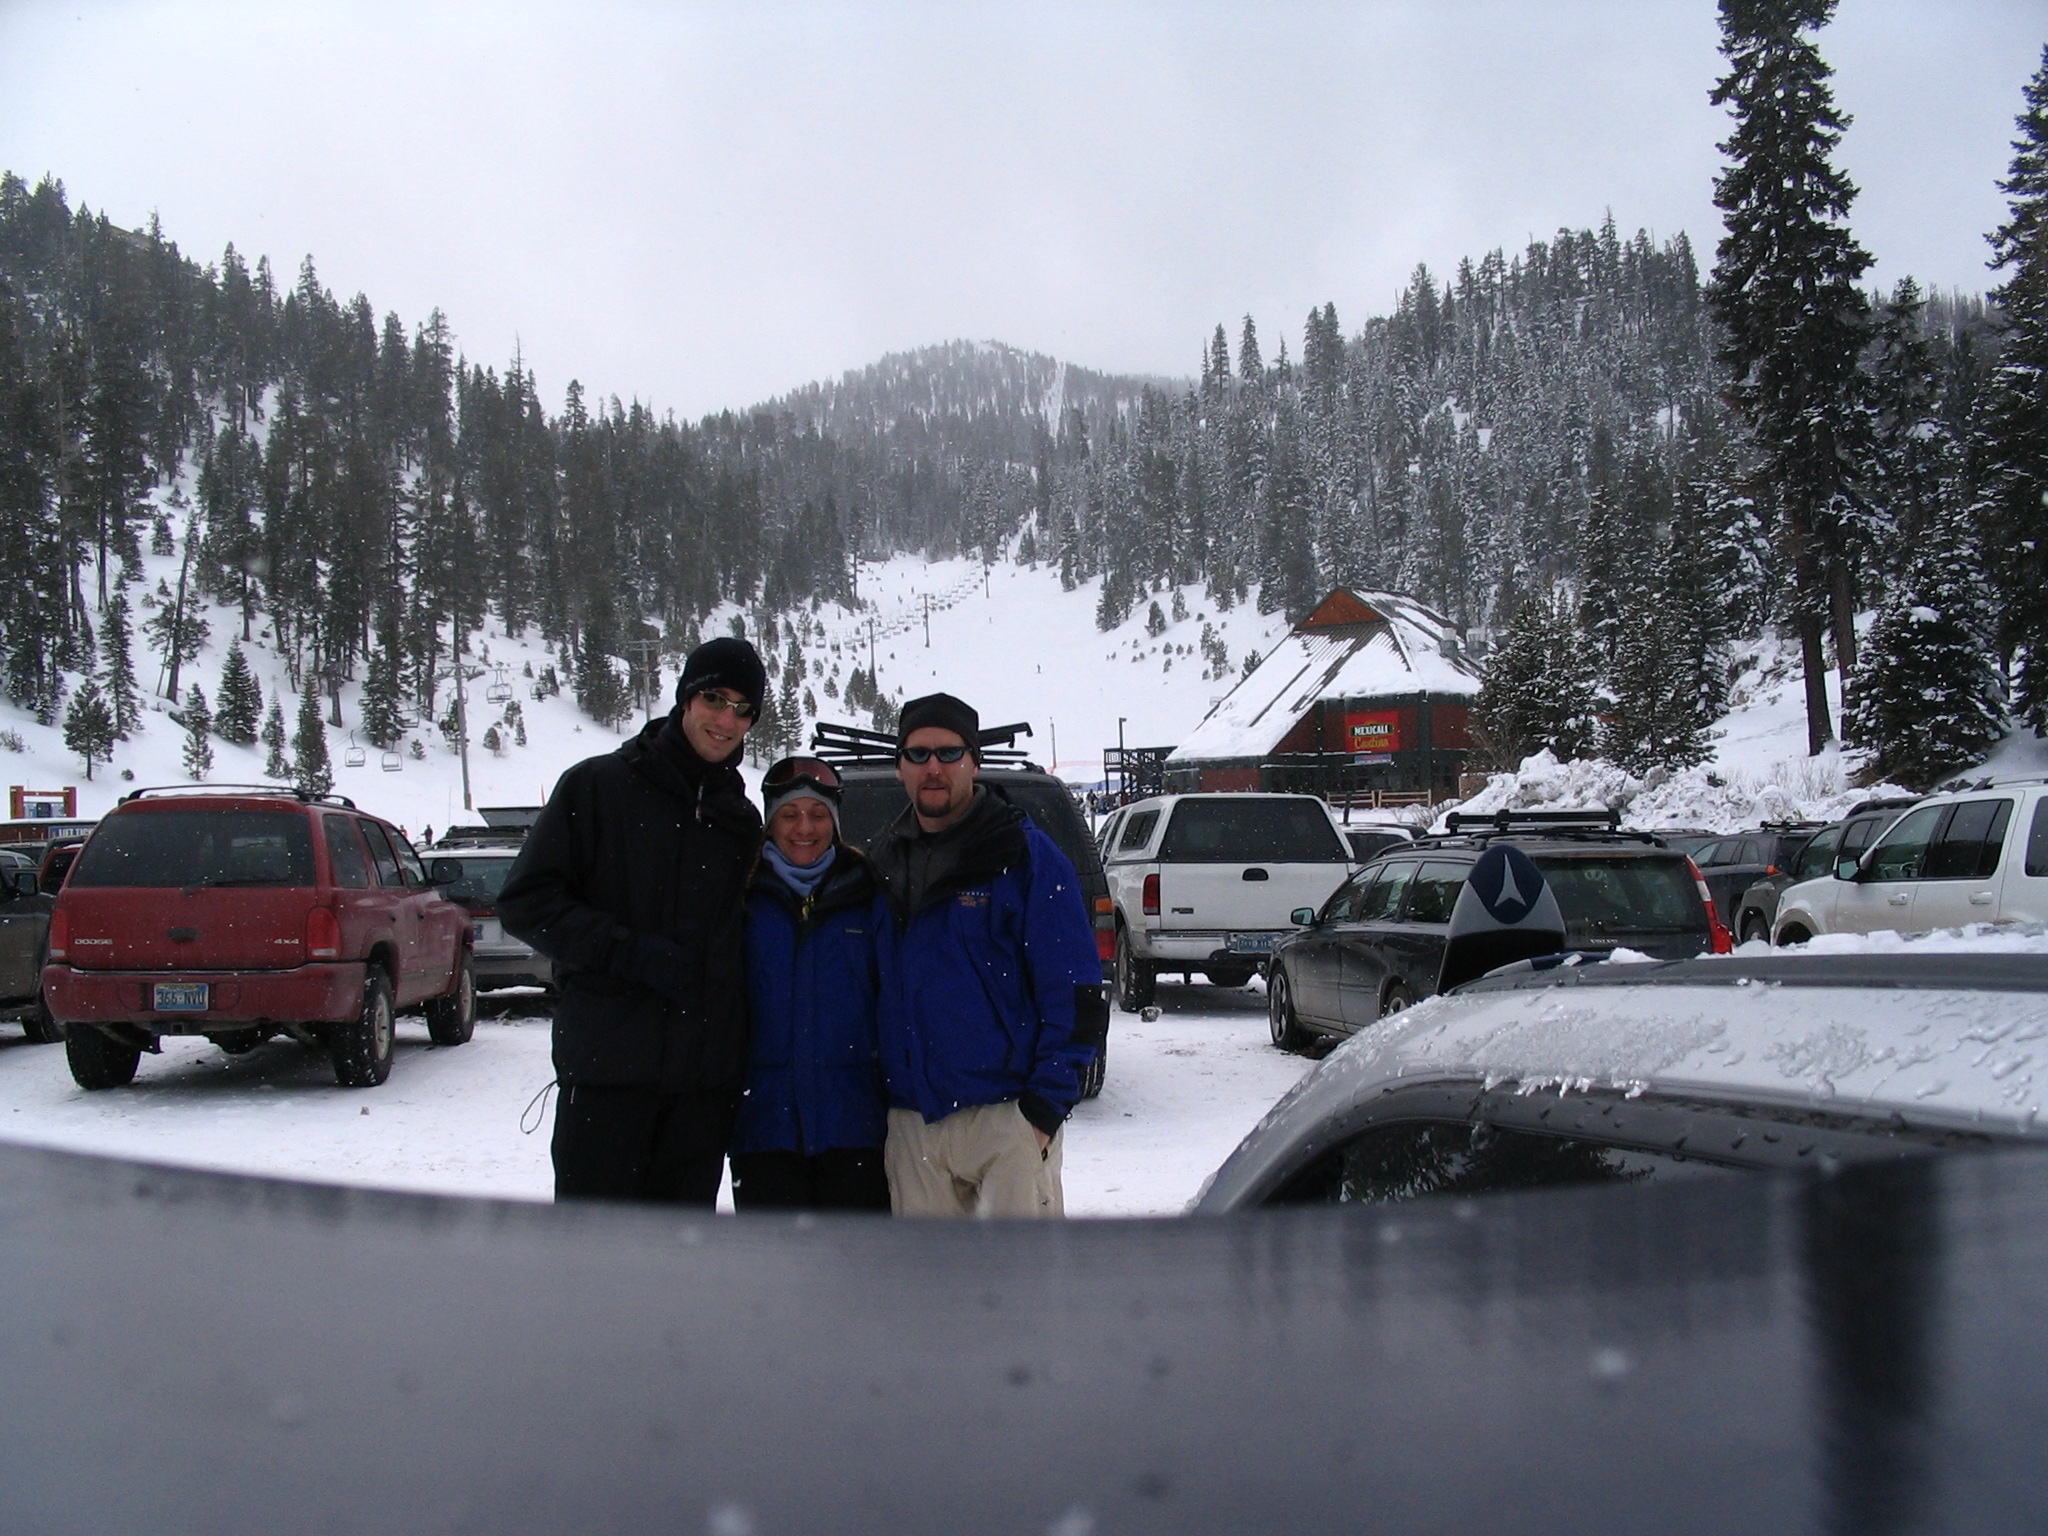 Me, Mandy and Blake in Tahoe